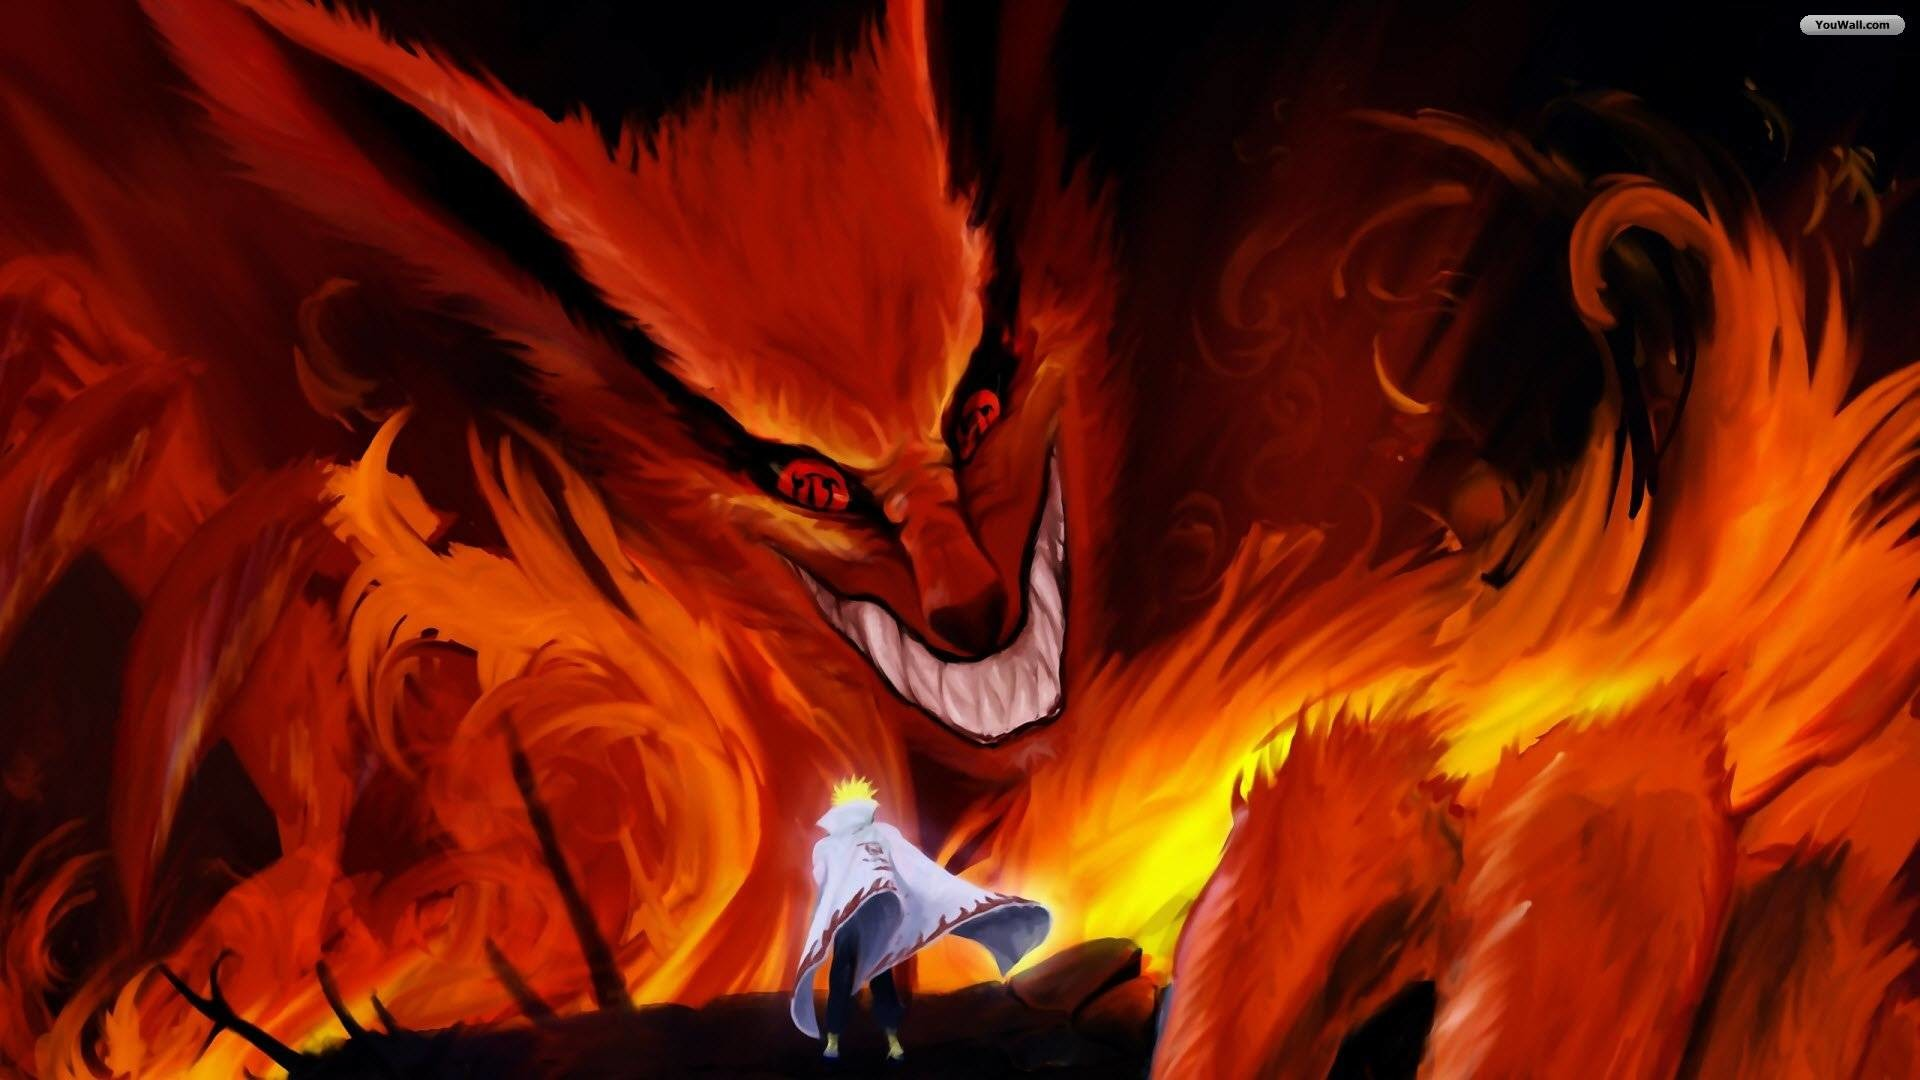 Wallpapers For > Naruto Shippuden Nine Tails Wallpaper Hd